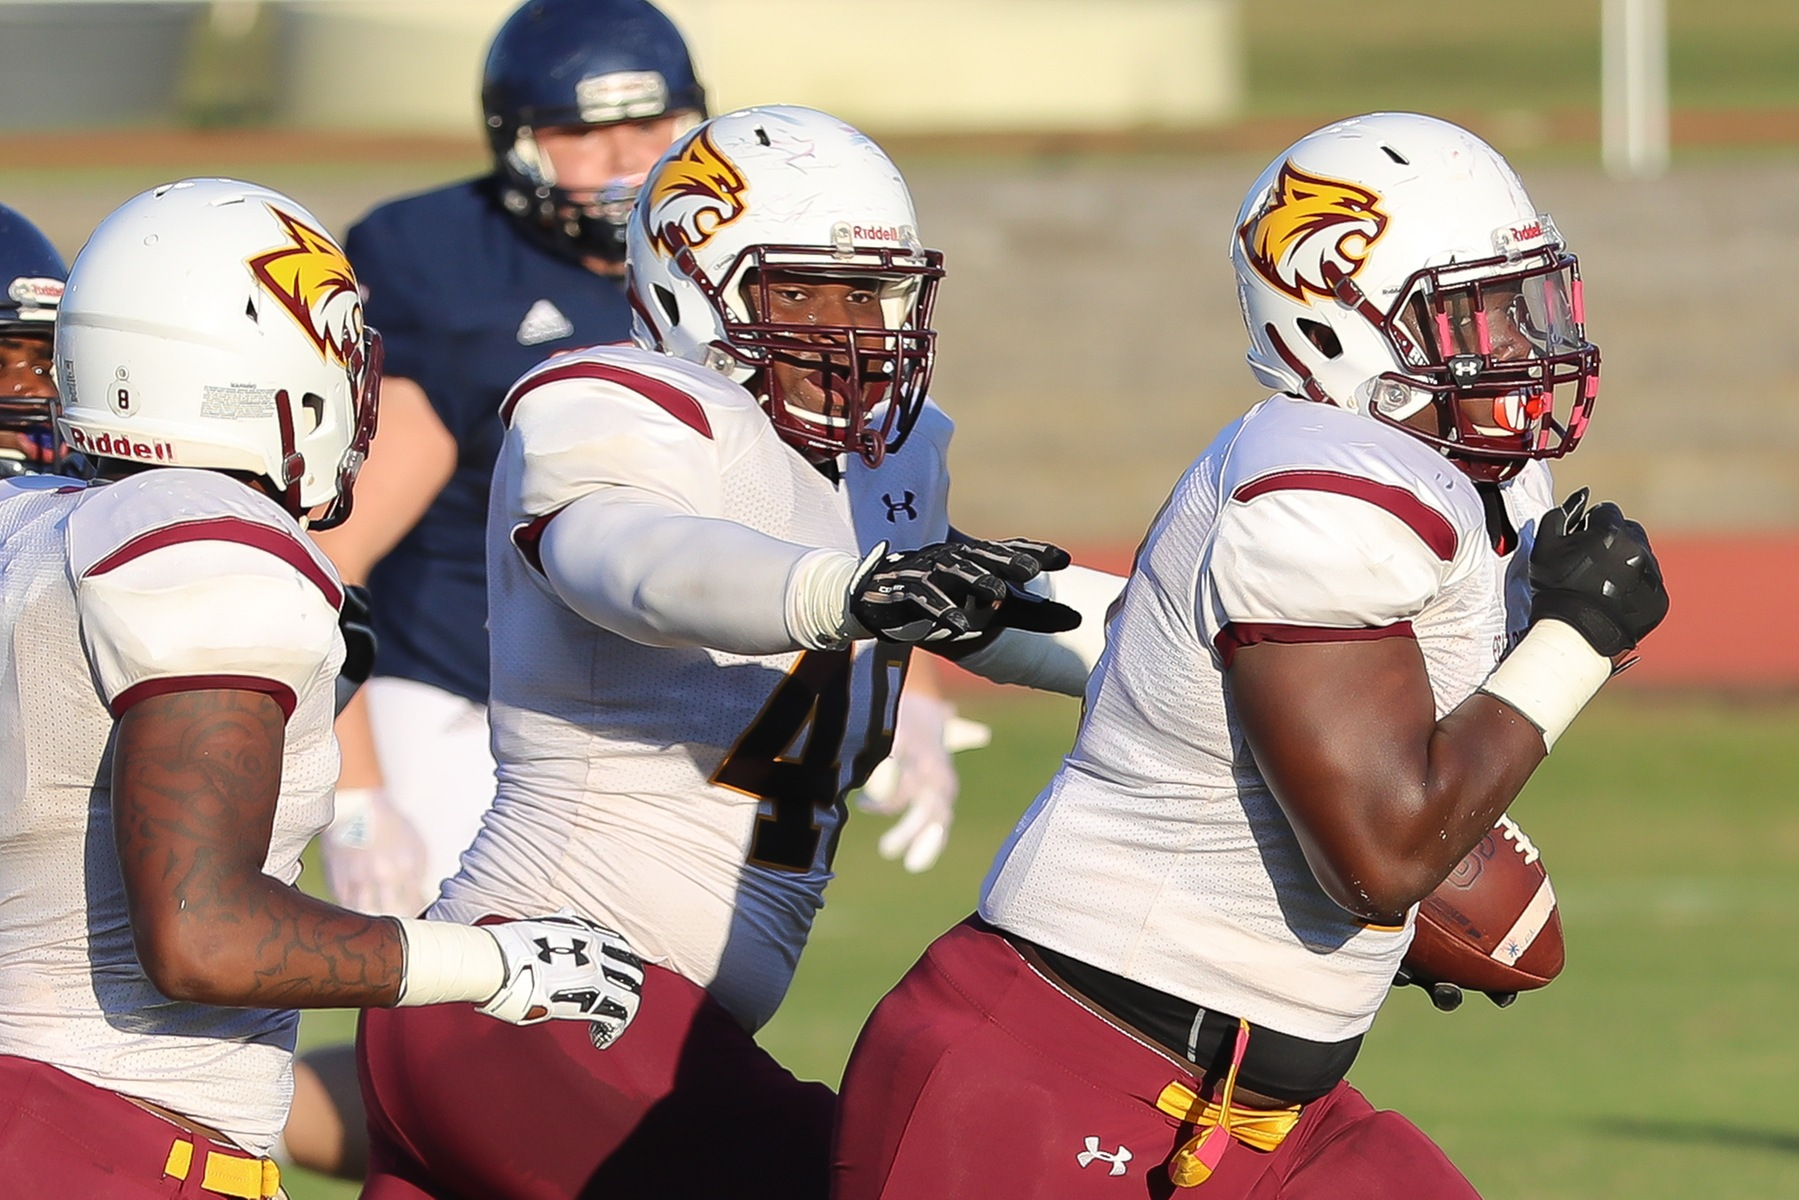 Pearl River defeated Southwest 37-9 in Summit, Miss., on Saturday, Oct. 13, 2018. (JUCOWeekly.org)